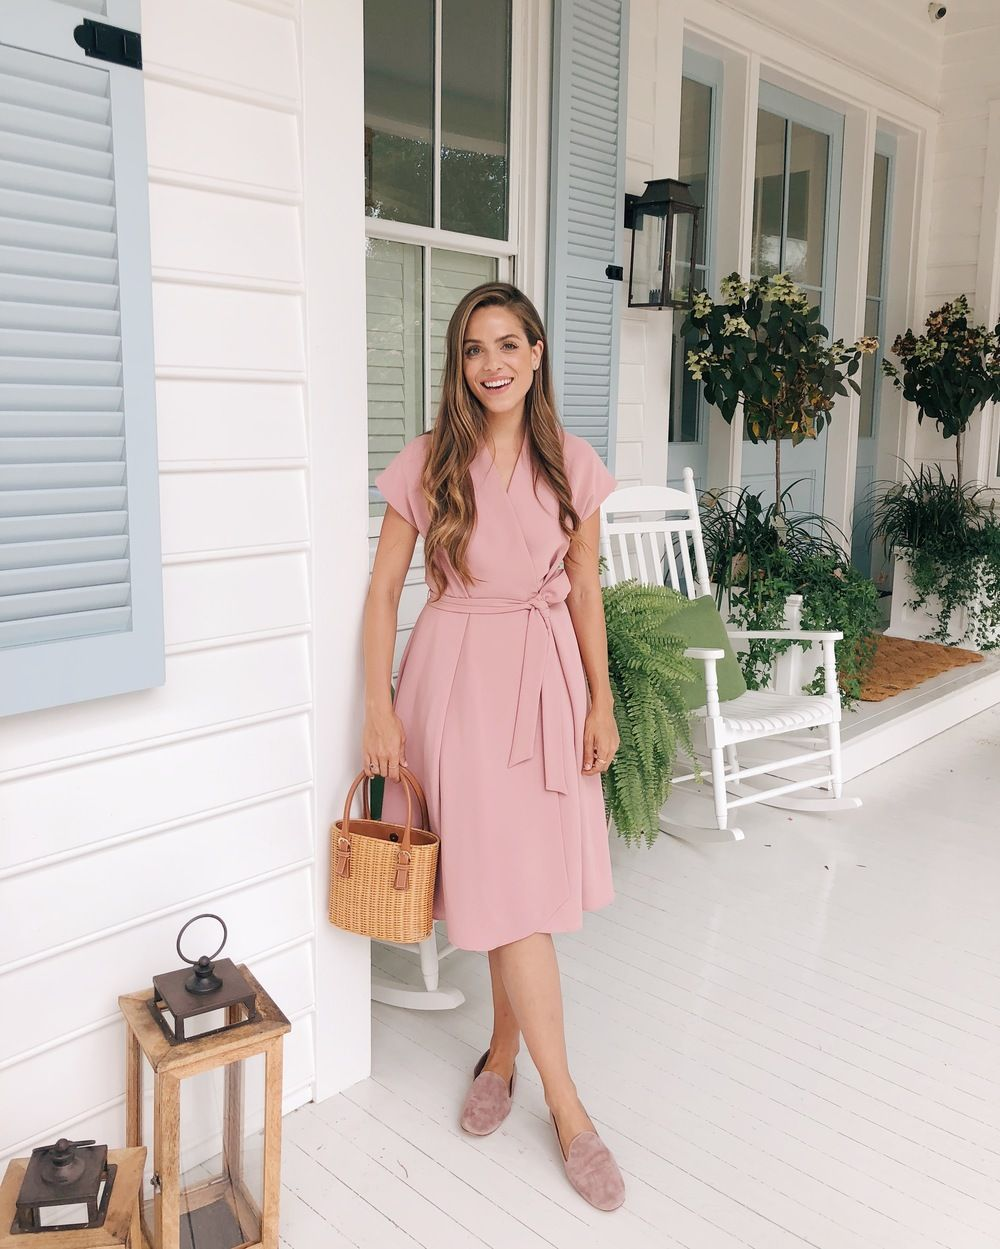 7756b94718 Gal Meets Glam featuring Julia wearing a Gal Meets Glam Collection Audrey  dress with a vintage Ferragamo basket bag and Vince suede loafers in blush.